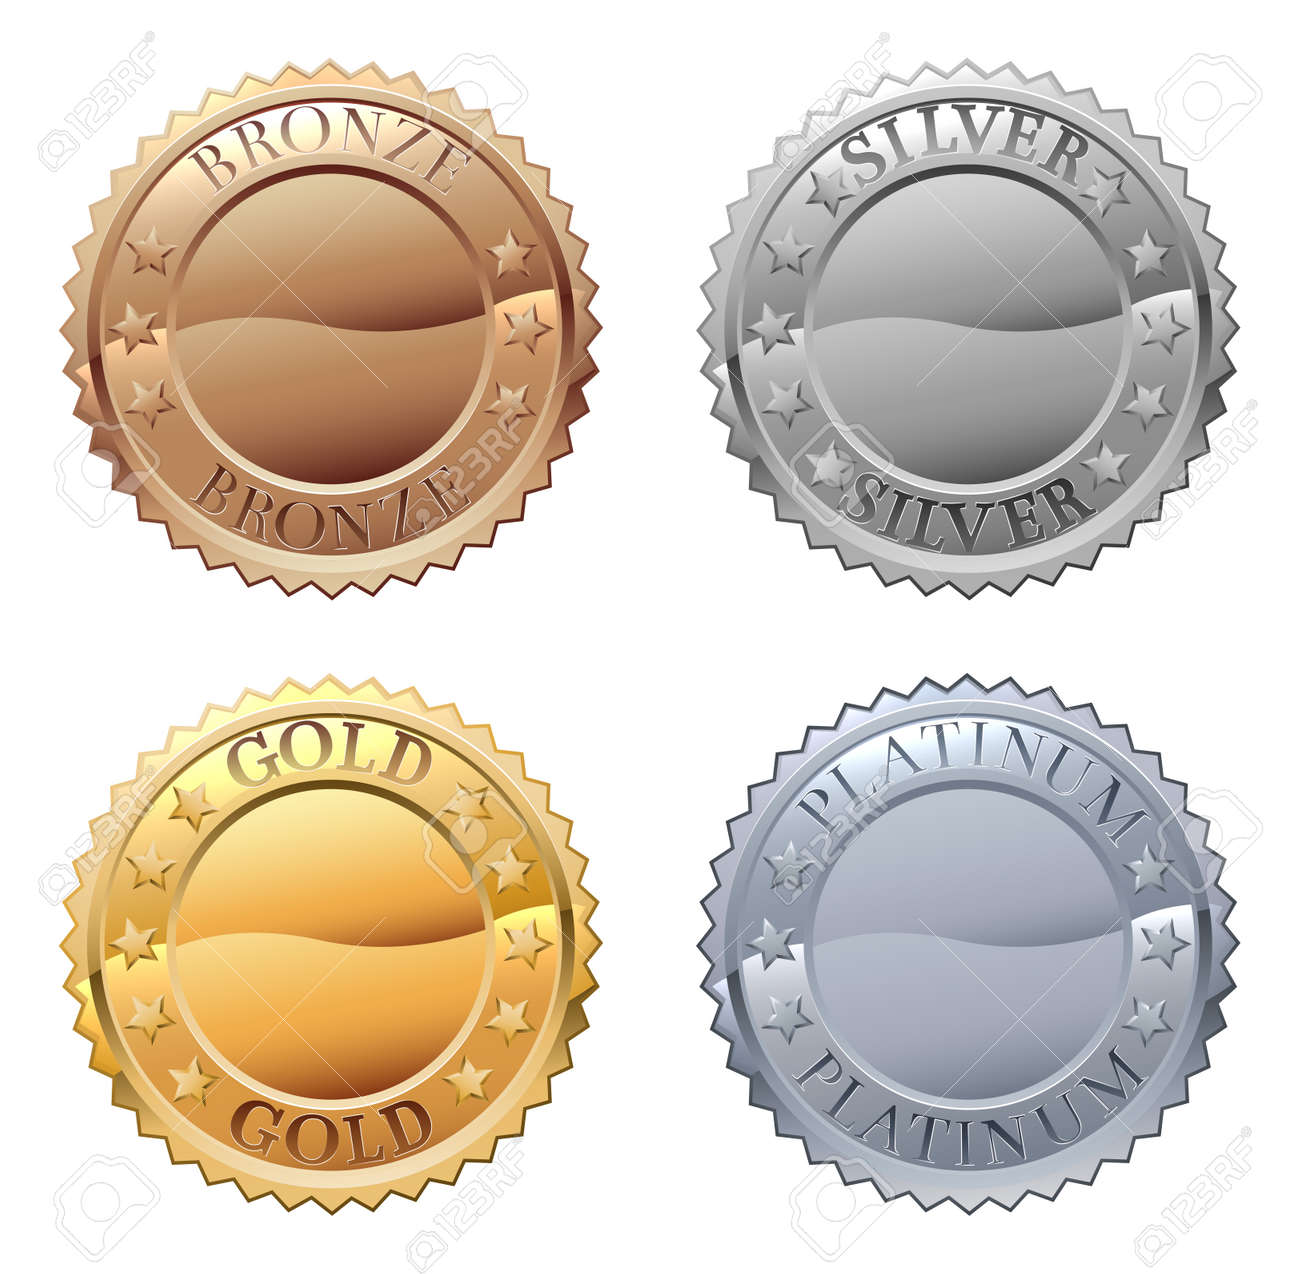 A medals icon set with platinum, gold, silver and bronze badges - 106170654